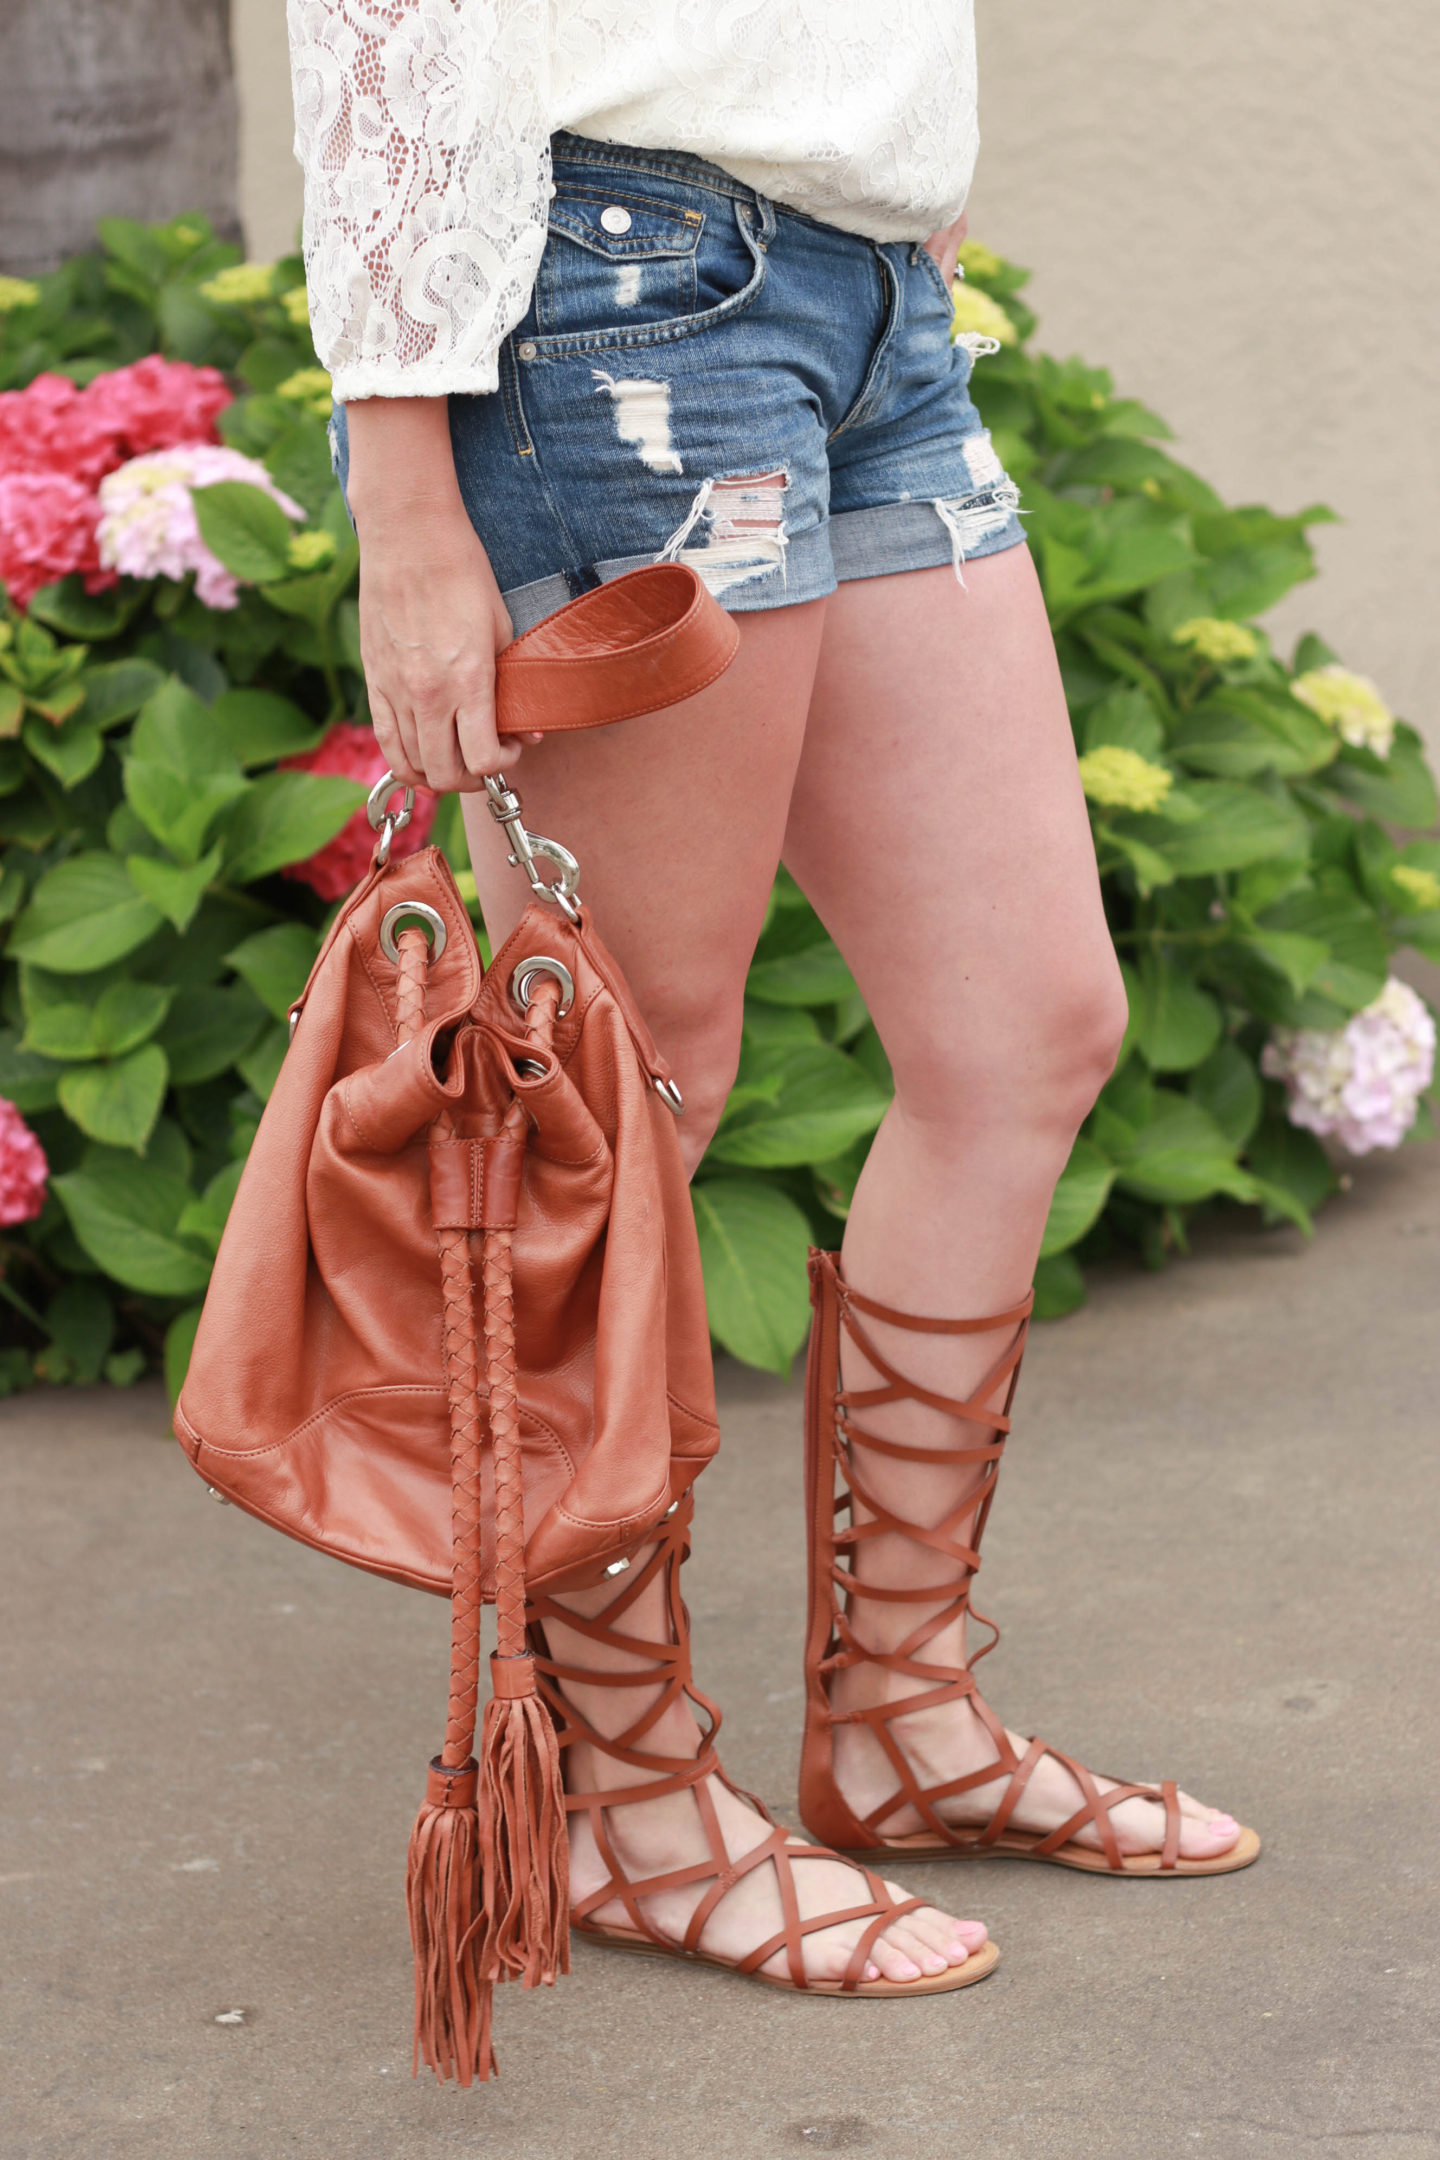 A lace top with gladiator sandals and destroyed denim.